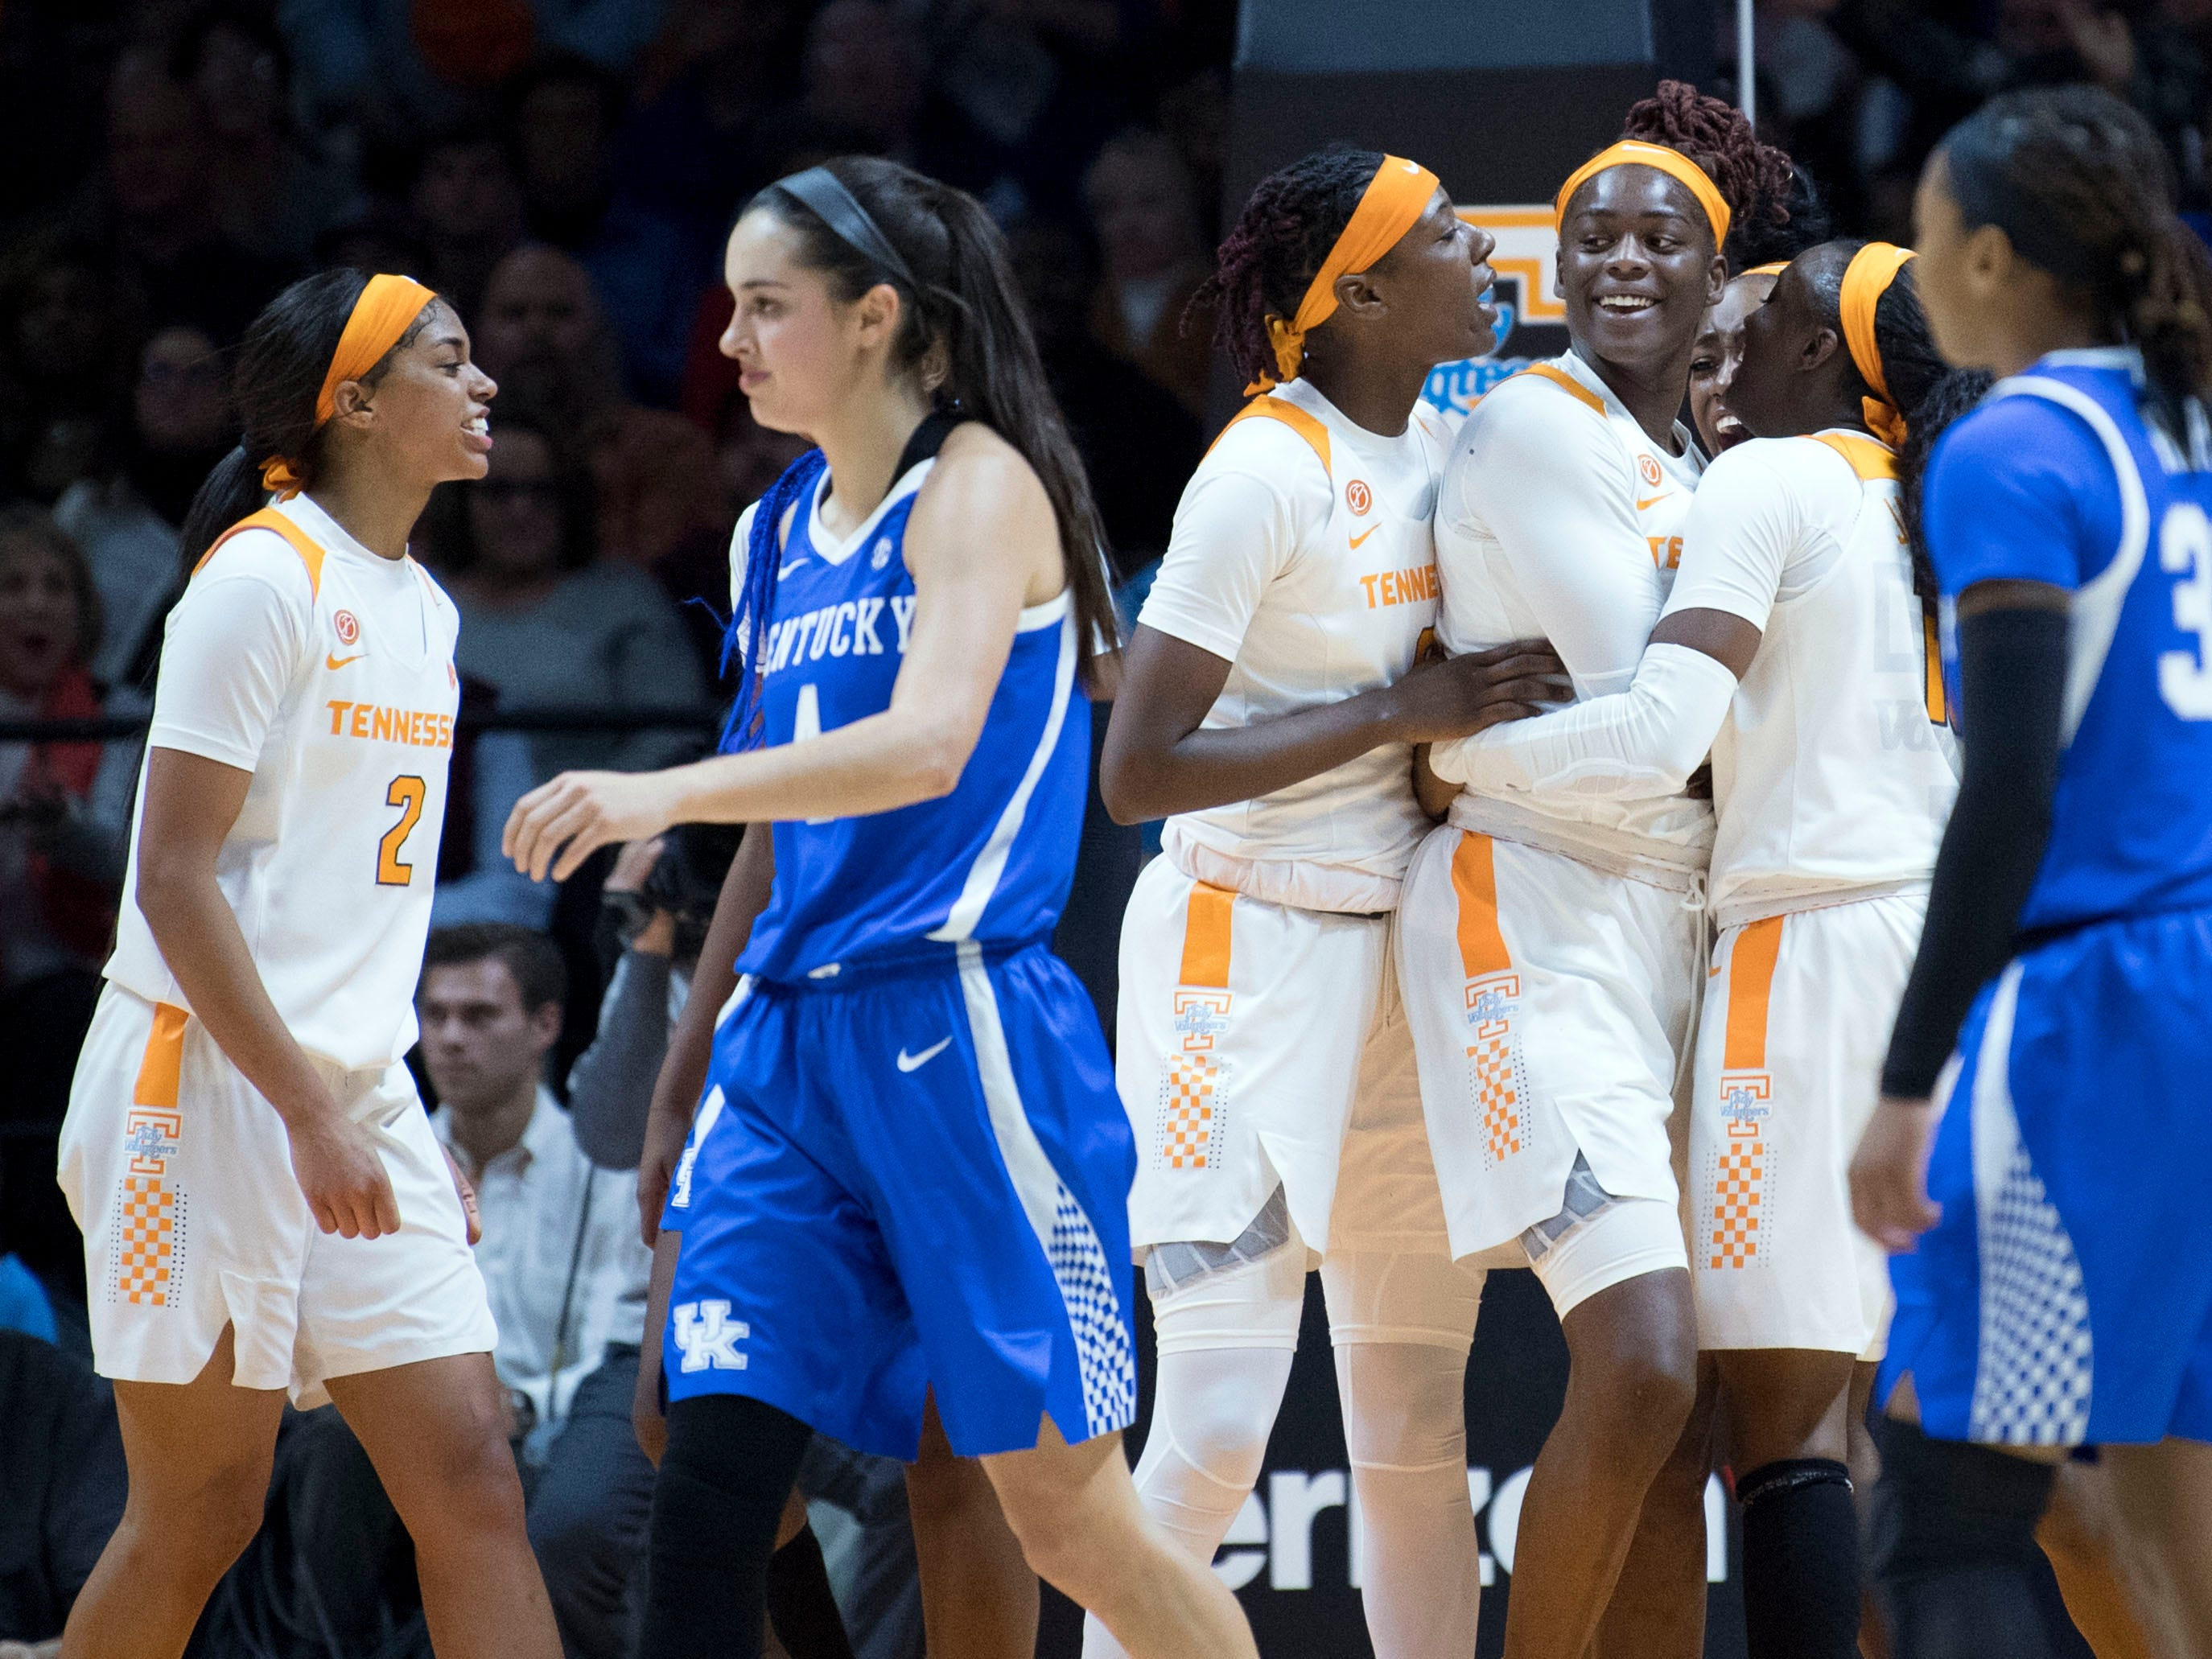 Tennessee players celebrate as Cheridene Green (15) took a charge by Kentucky's Maci Morris (4) for her 5th foul of the game on Thursday, January 10, 2019.